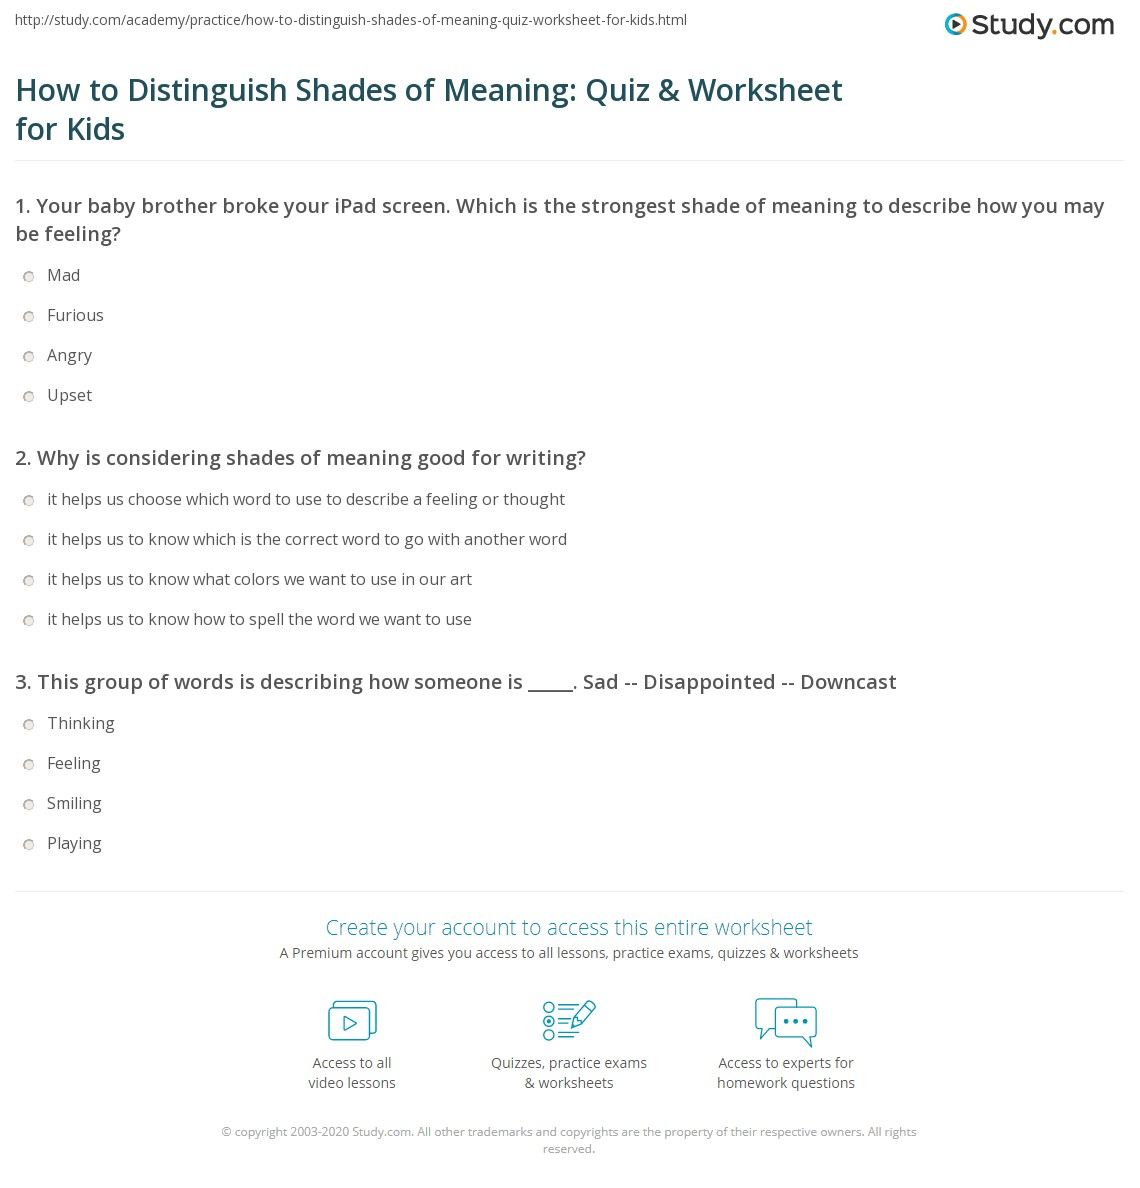 How to Distinguish Shades of Meaning: Quiz & Worksheet for ...